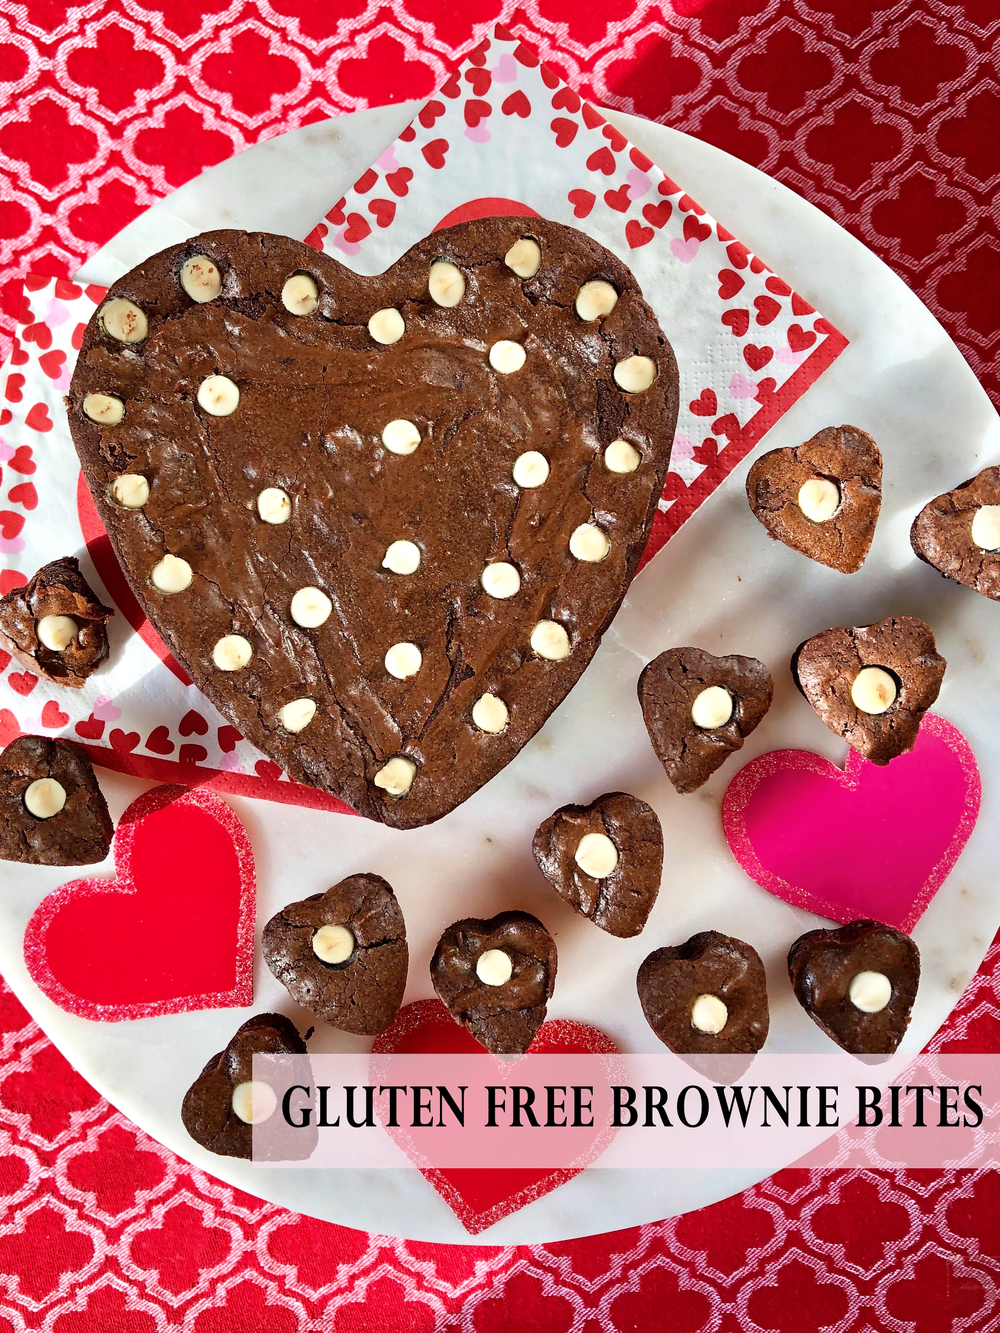 Gluten Free Brownies for Valentines Day